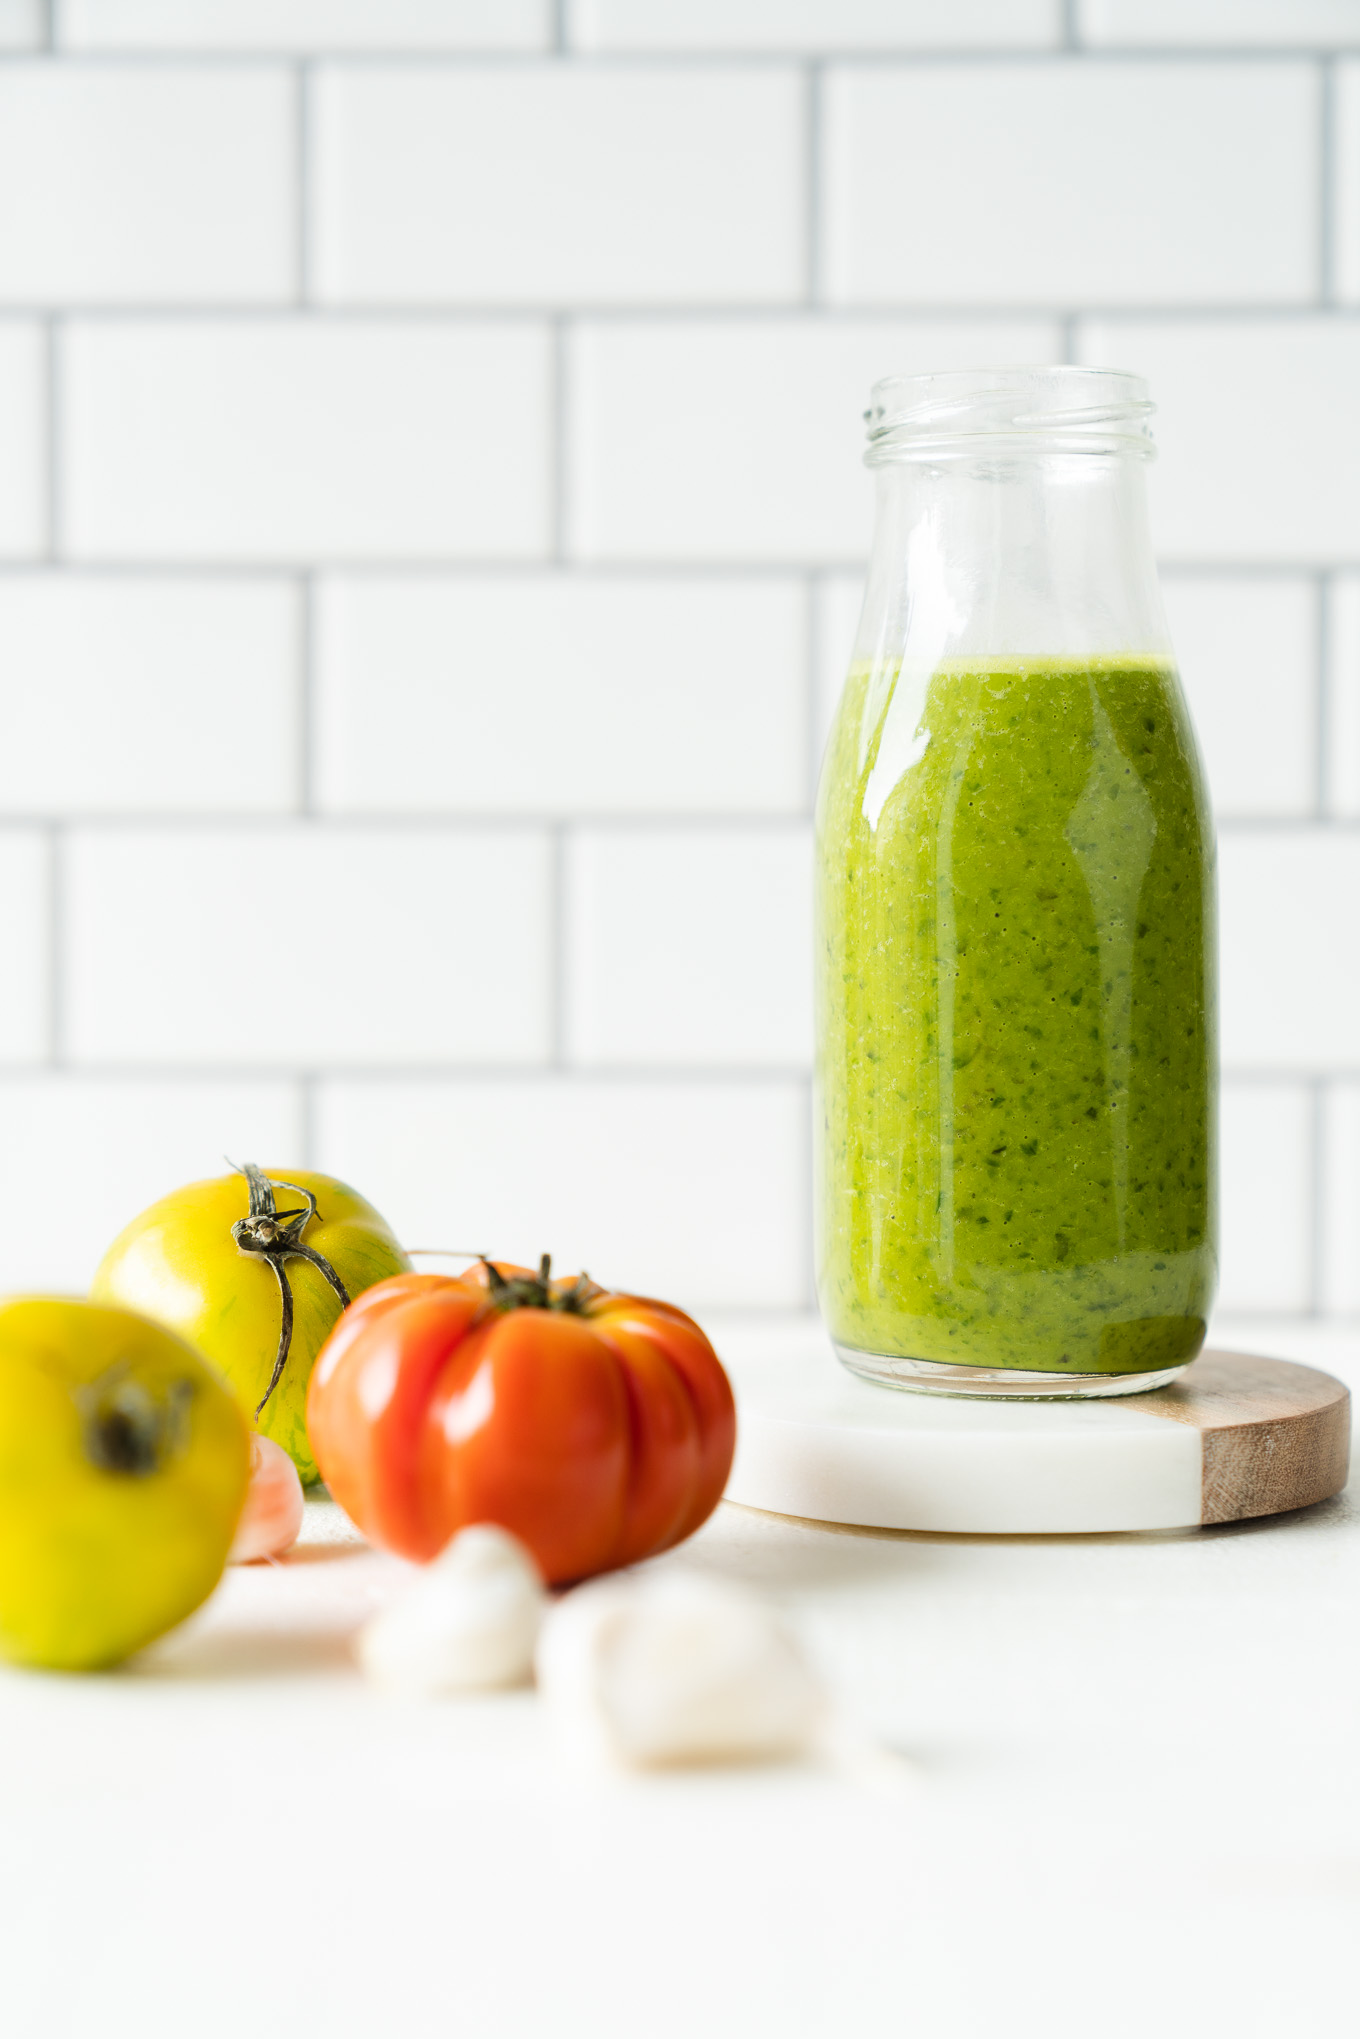 Basil Vinaigrette in glass jar with tomatoes